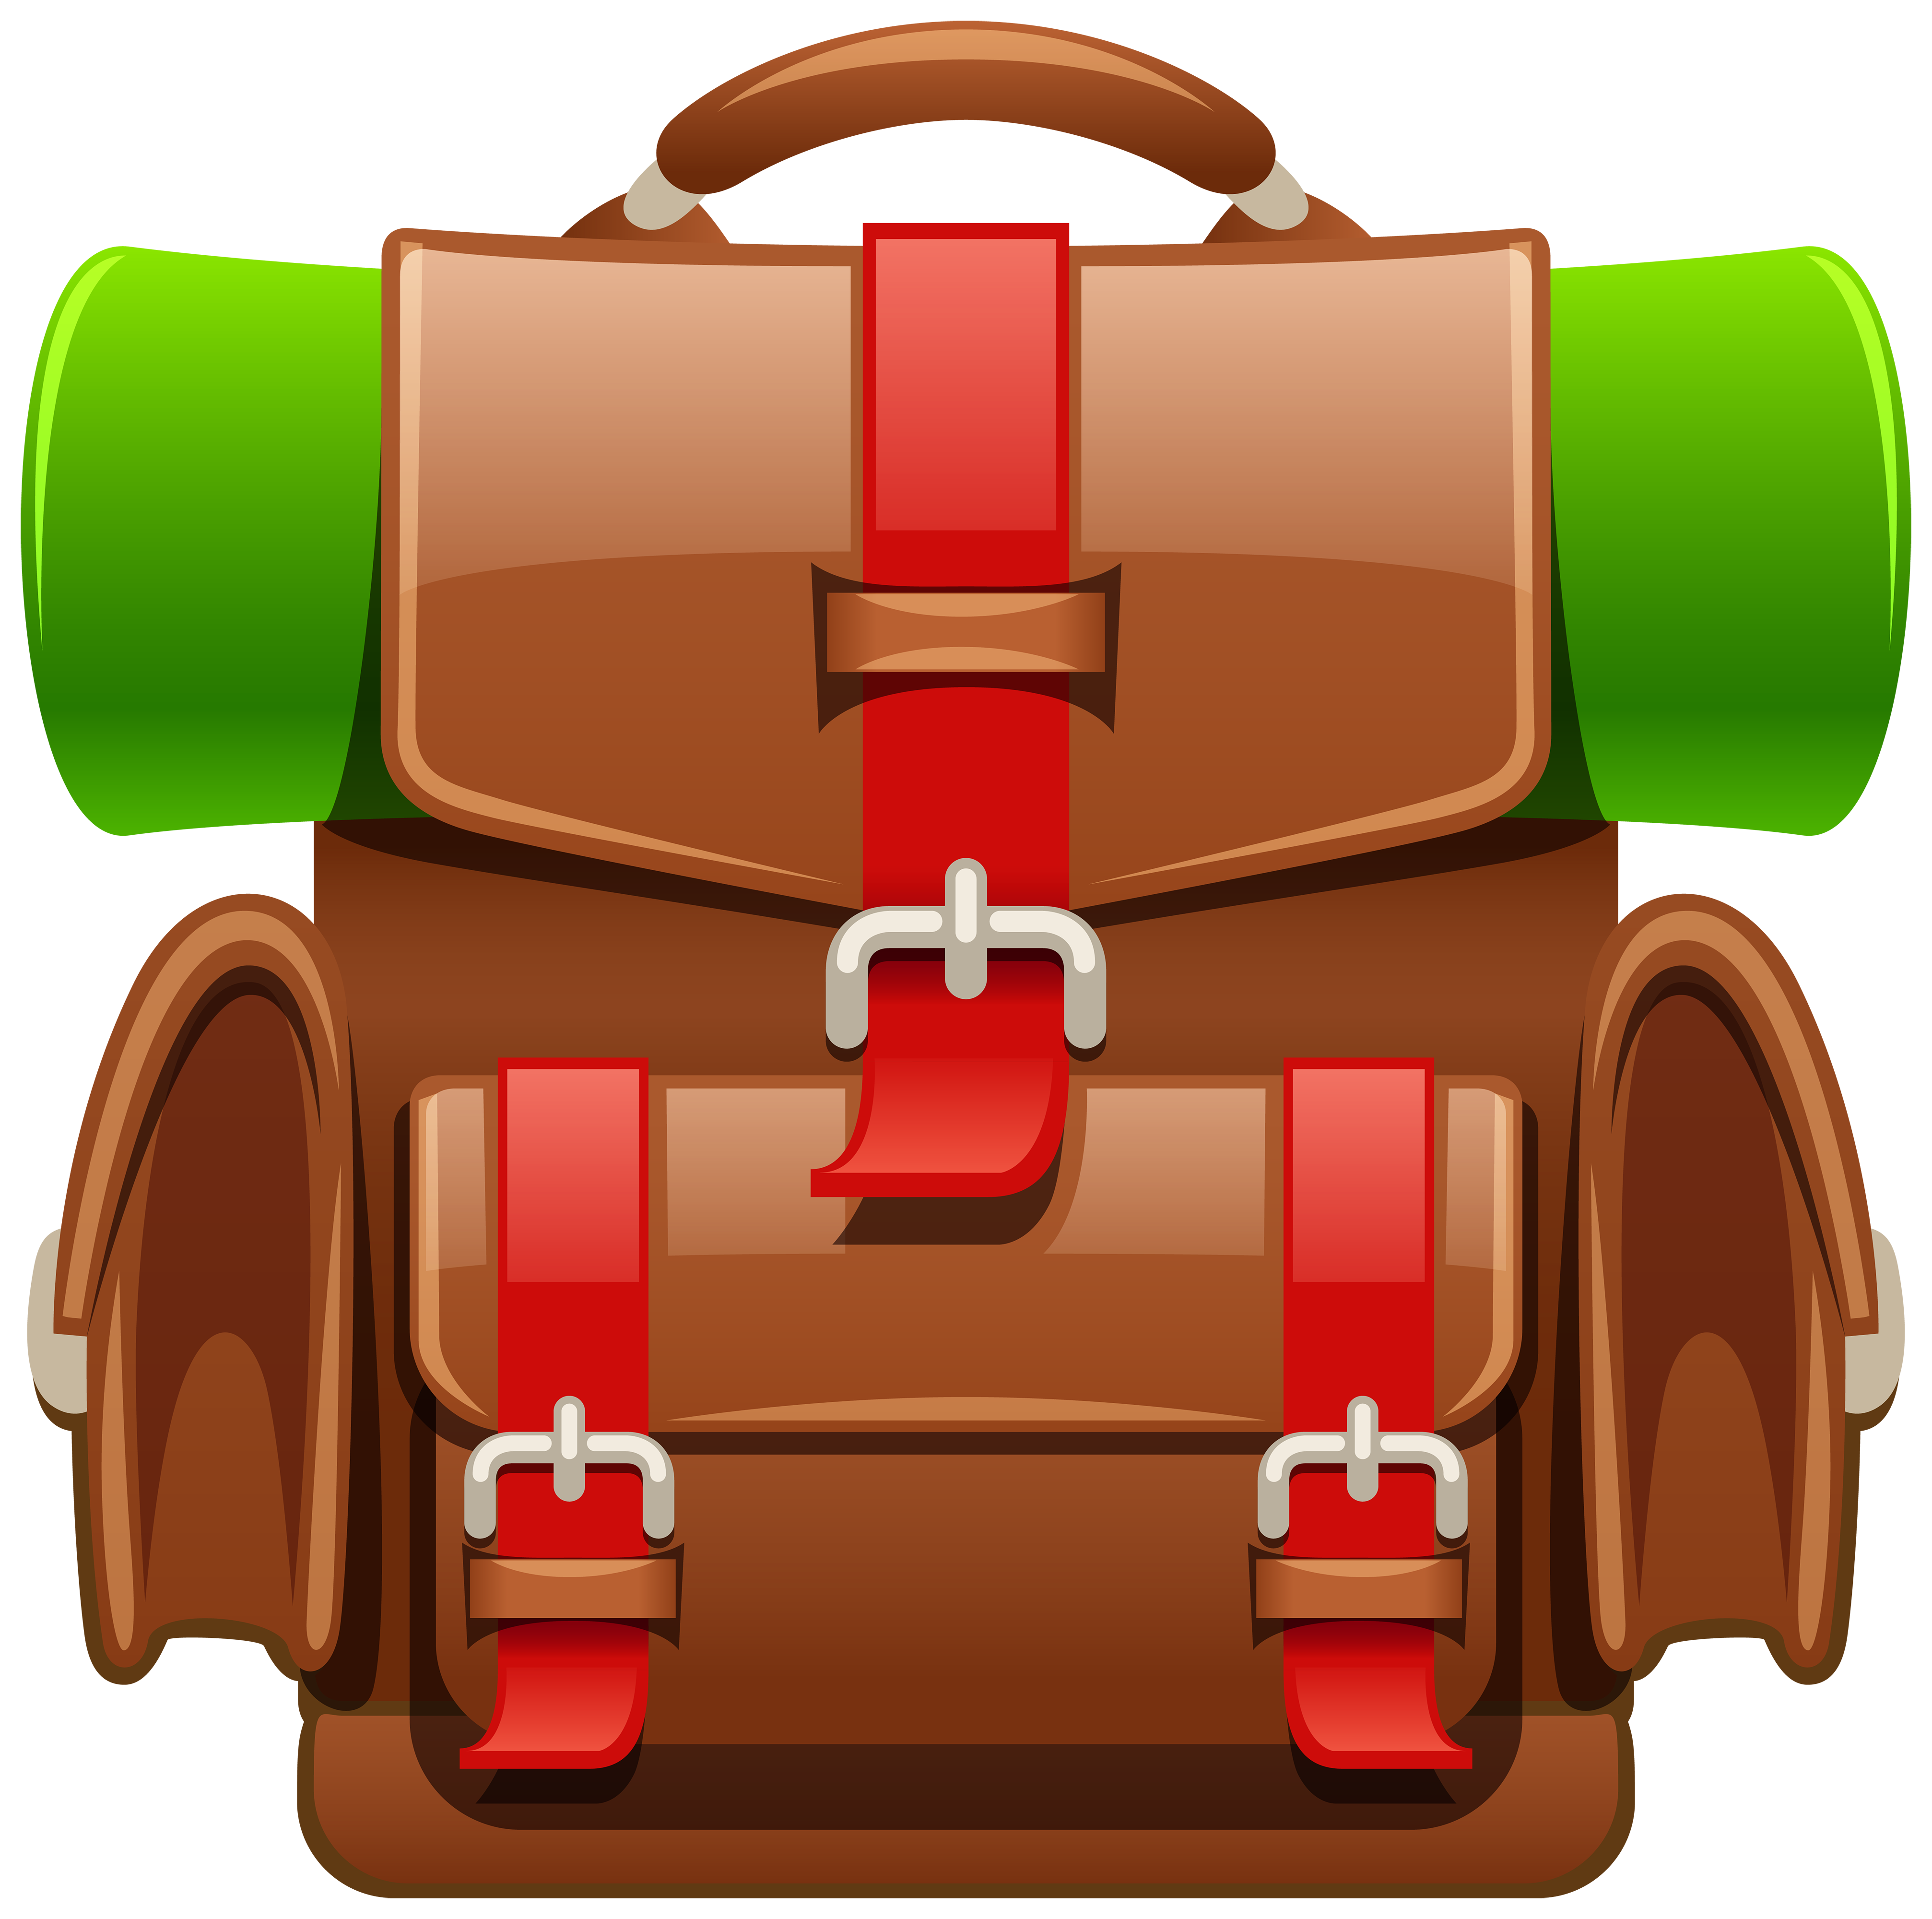 clipart freeuse download Photograph clipart tourist. Brown backpack png image.